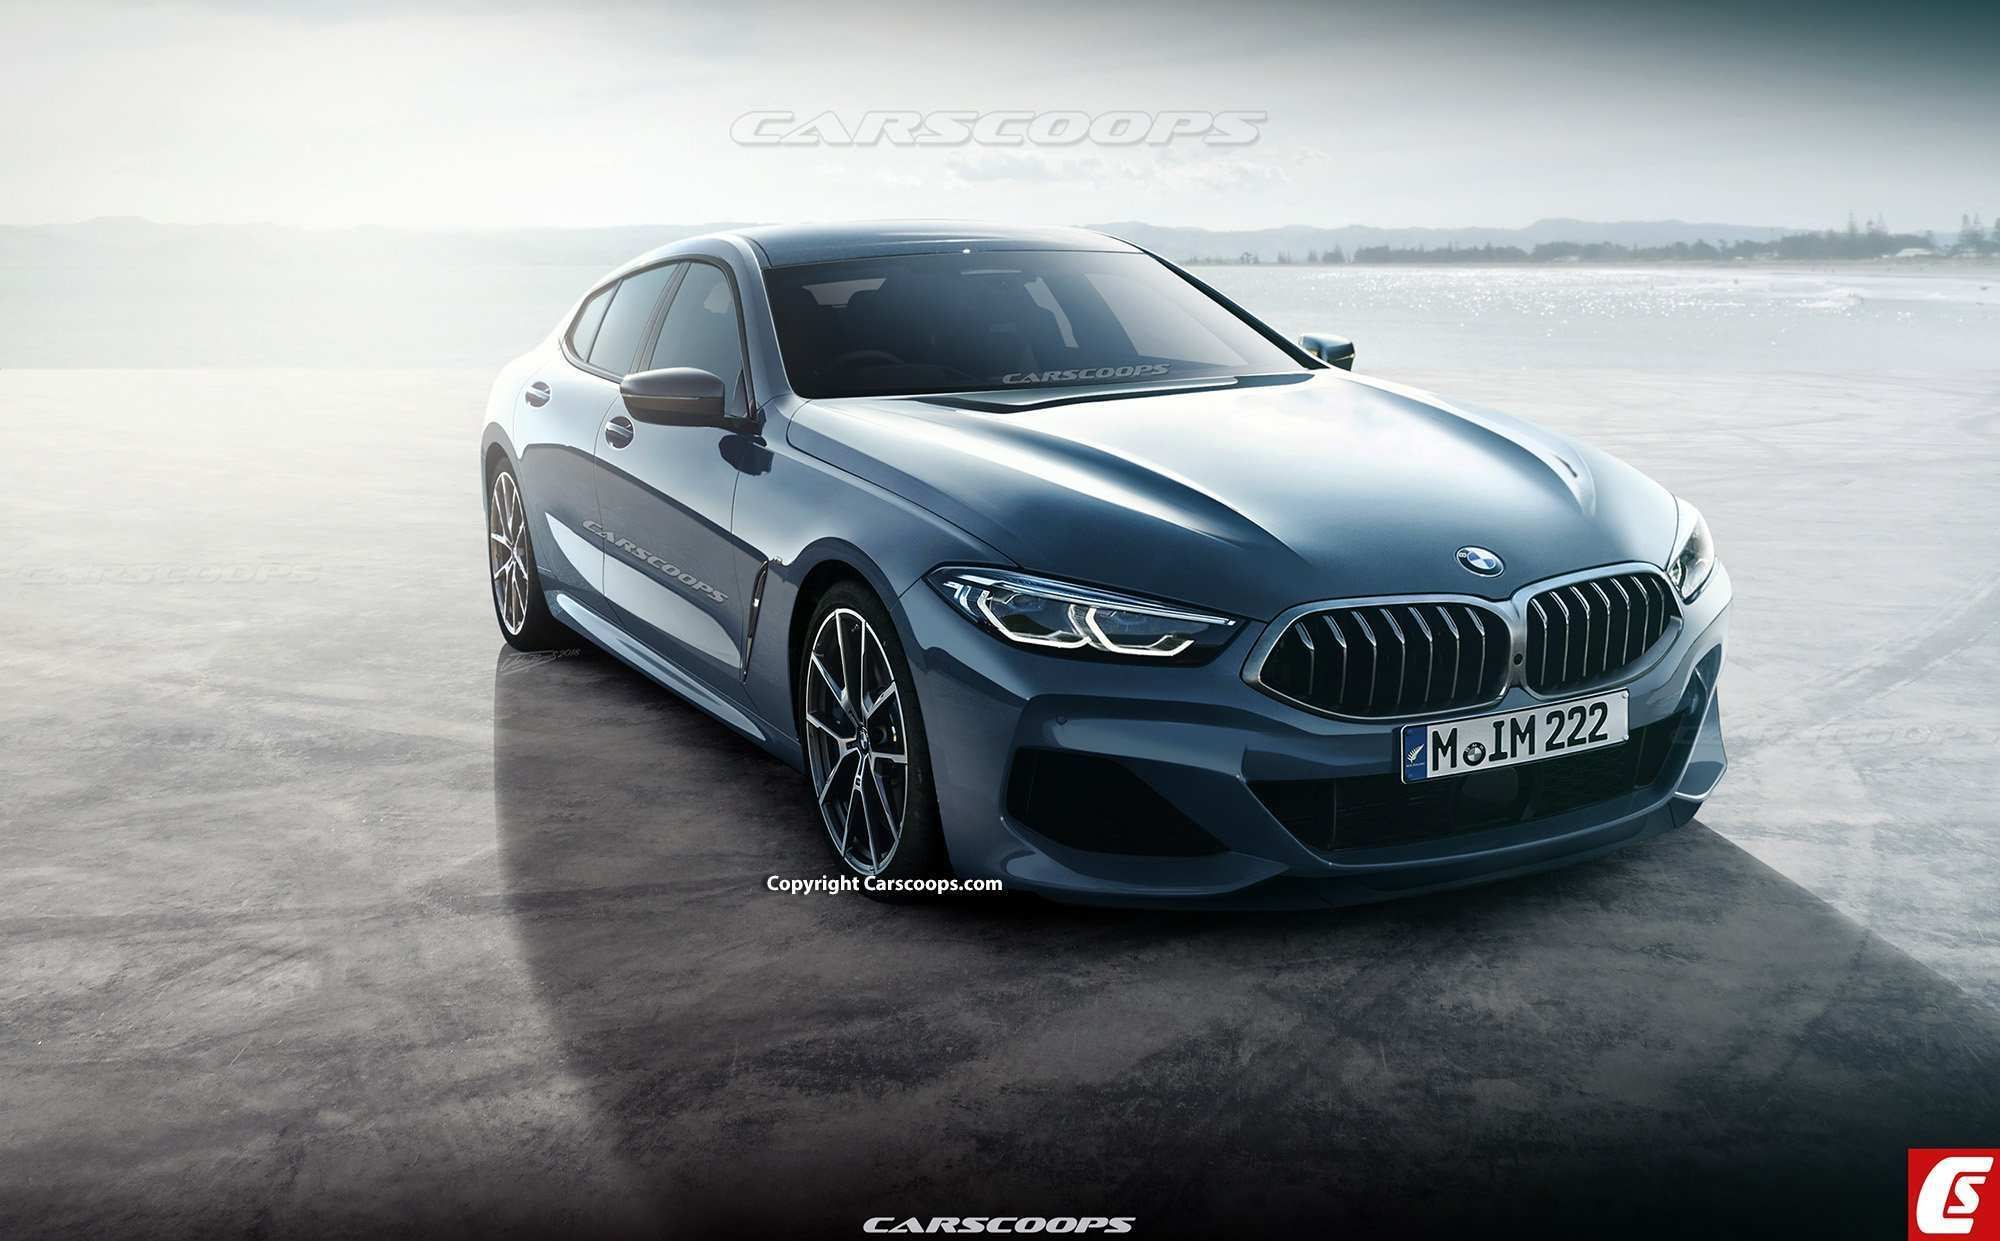 22 New 2020 Bmw 850 History with 2020 Bmw 850